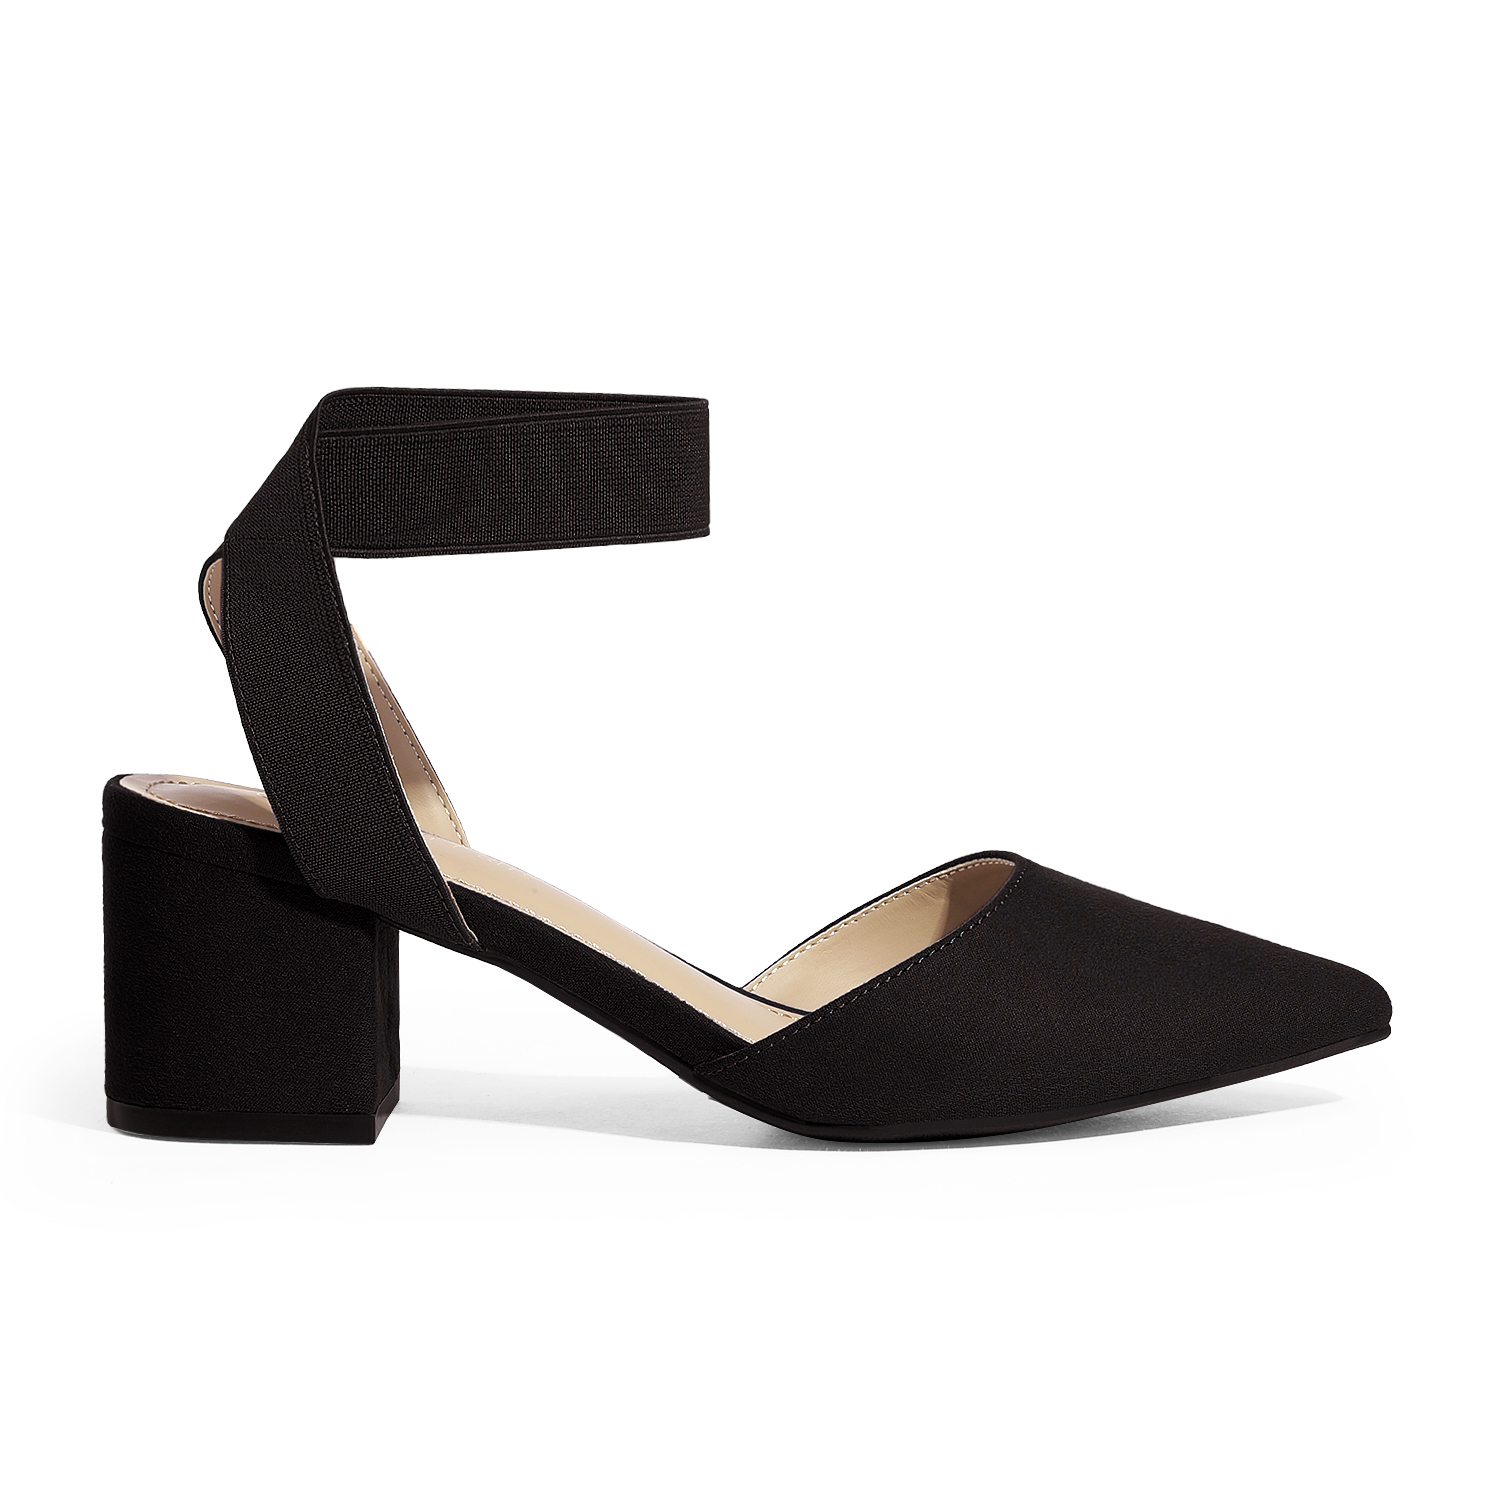 thumbnail 10 - Women-039-s-Elastic-Ankle-Strap-Pointed-Toe-Pump-Shoes-Low-Chunky-Heel-Dress-Pumps